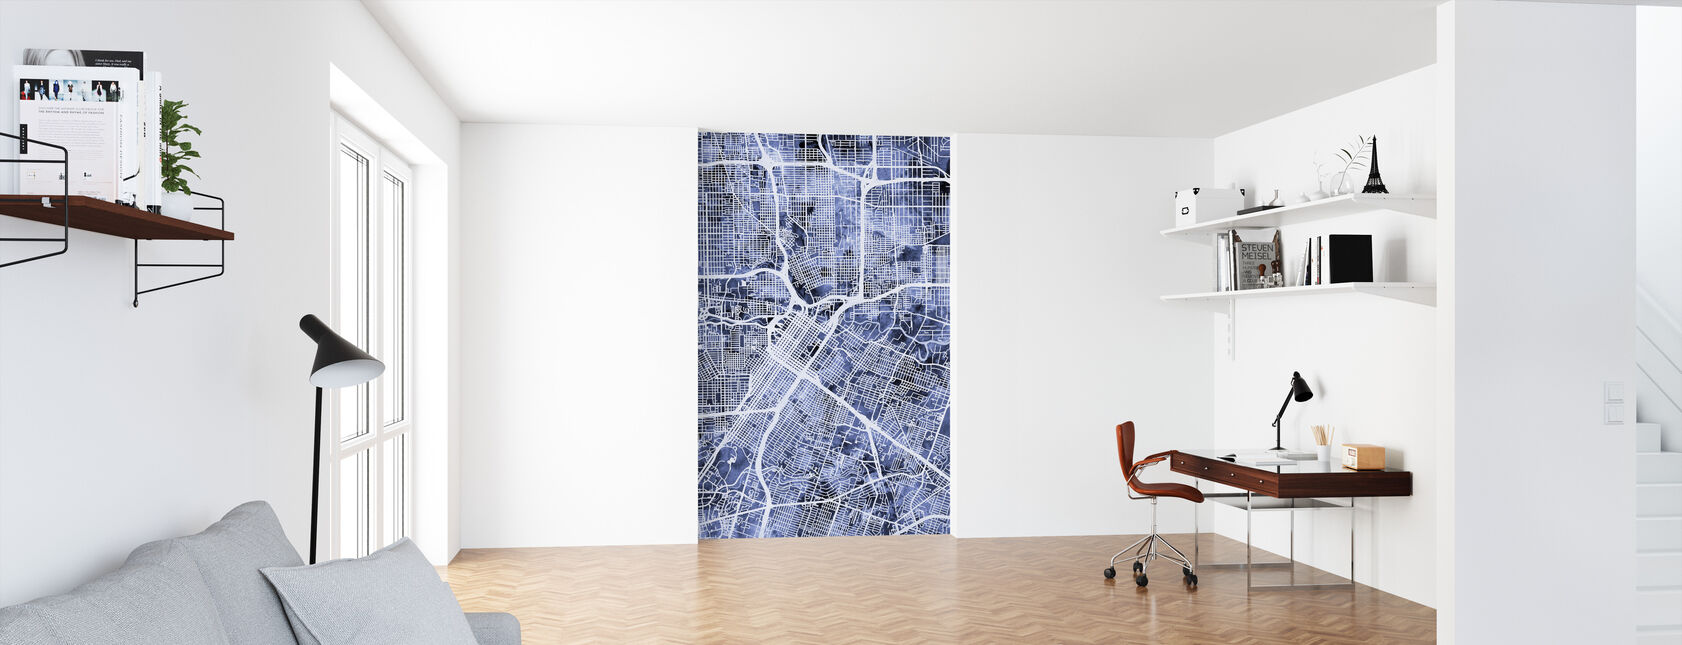 Houston Texas City Street Map - Wallpaper - Office